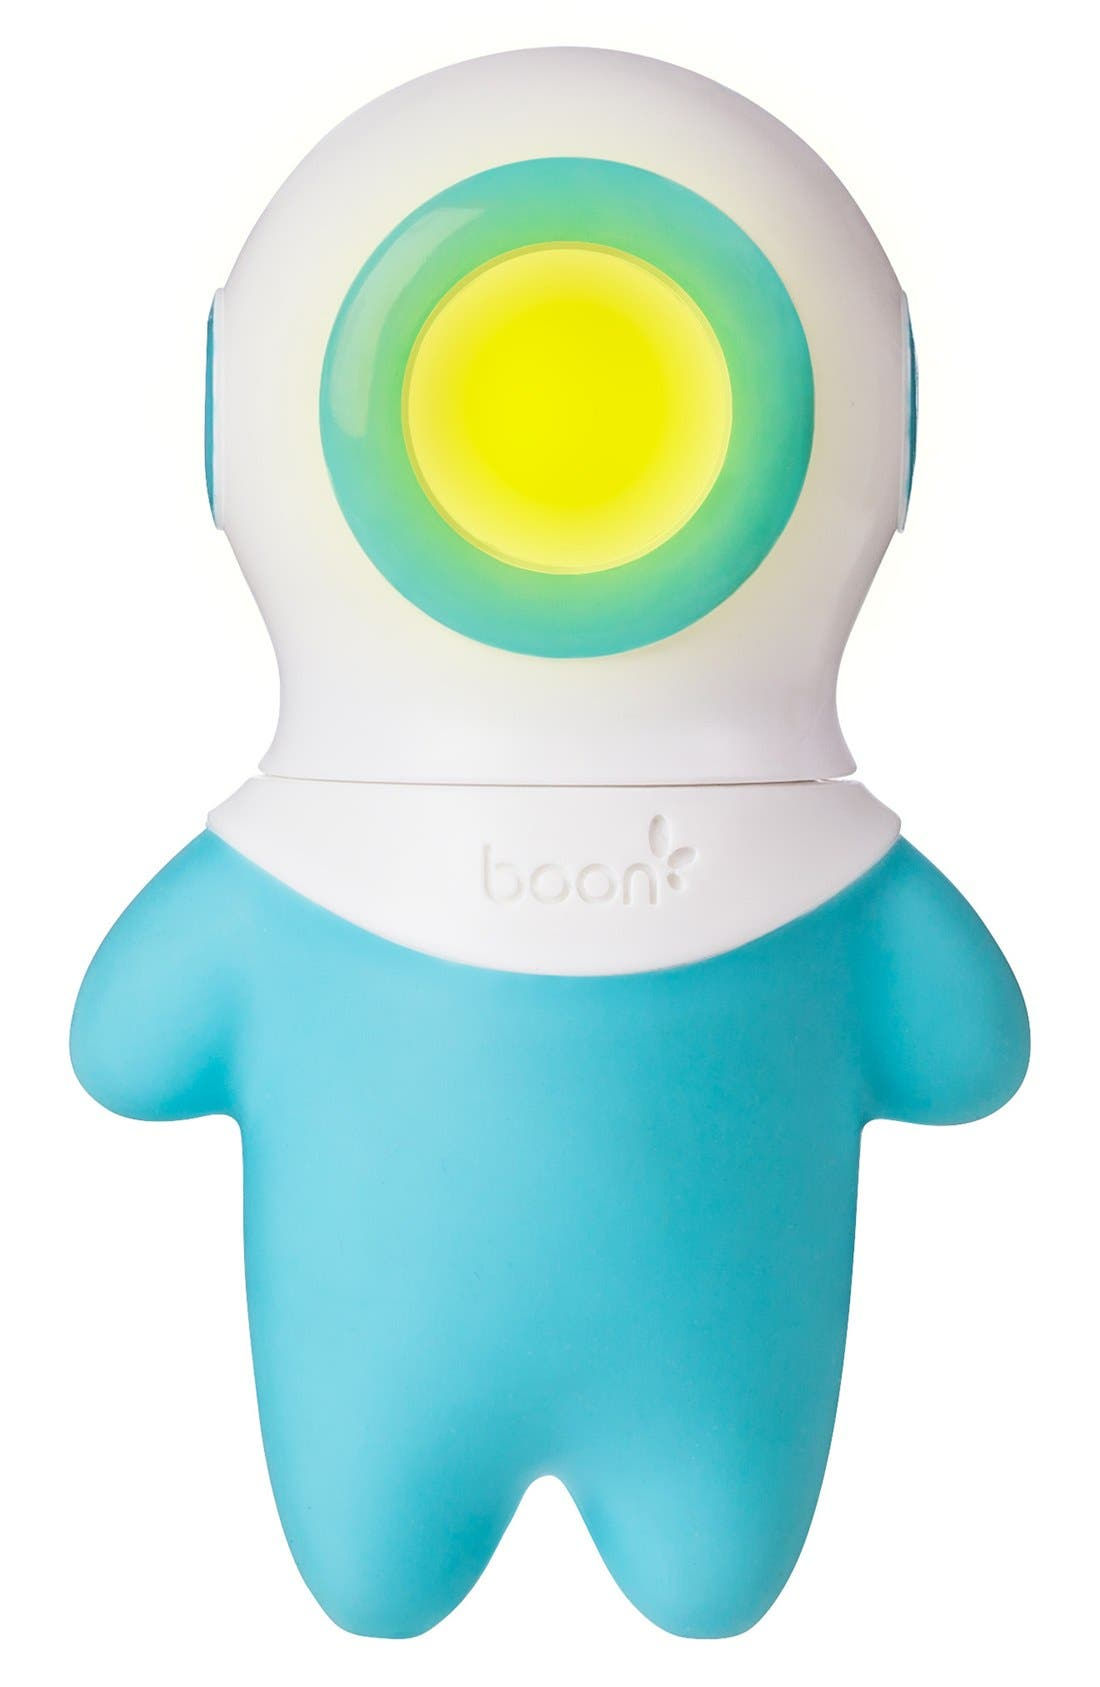 Main Image - Boon 'Marco' Light-Up Bath Toy